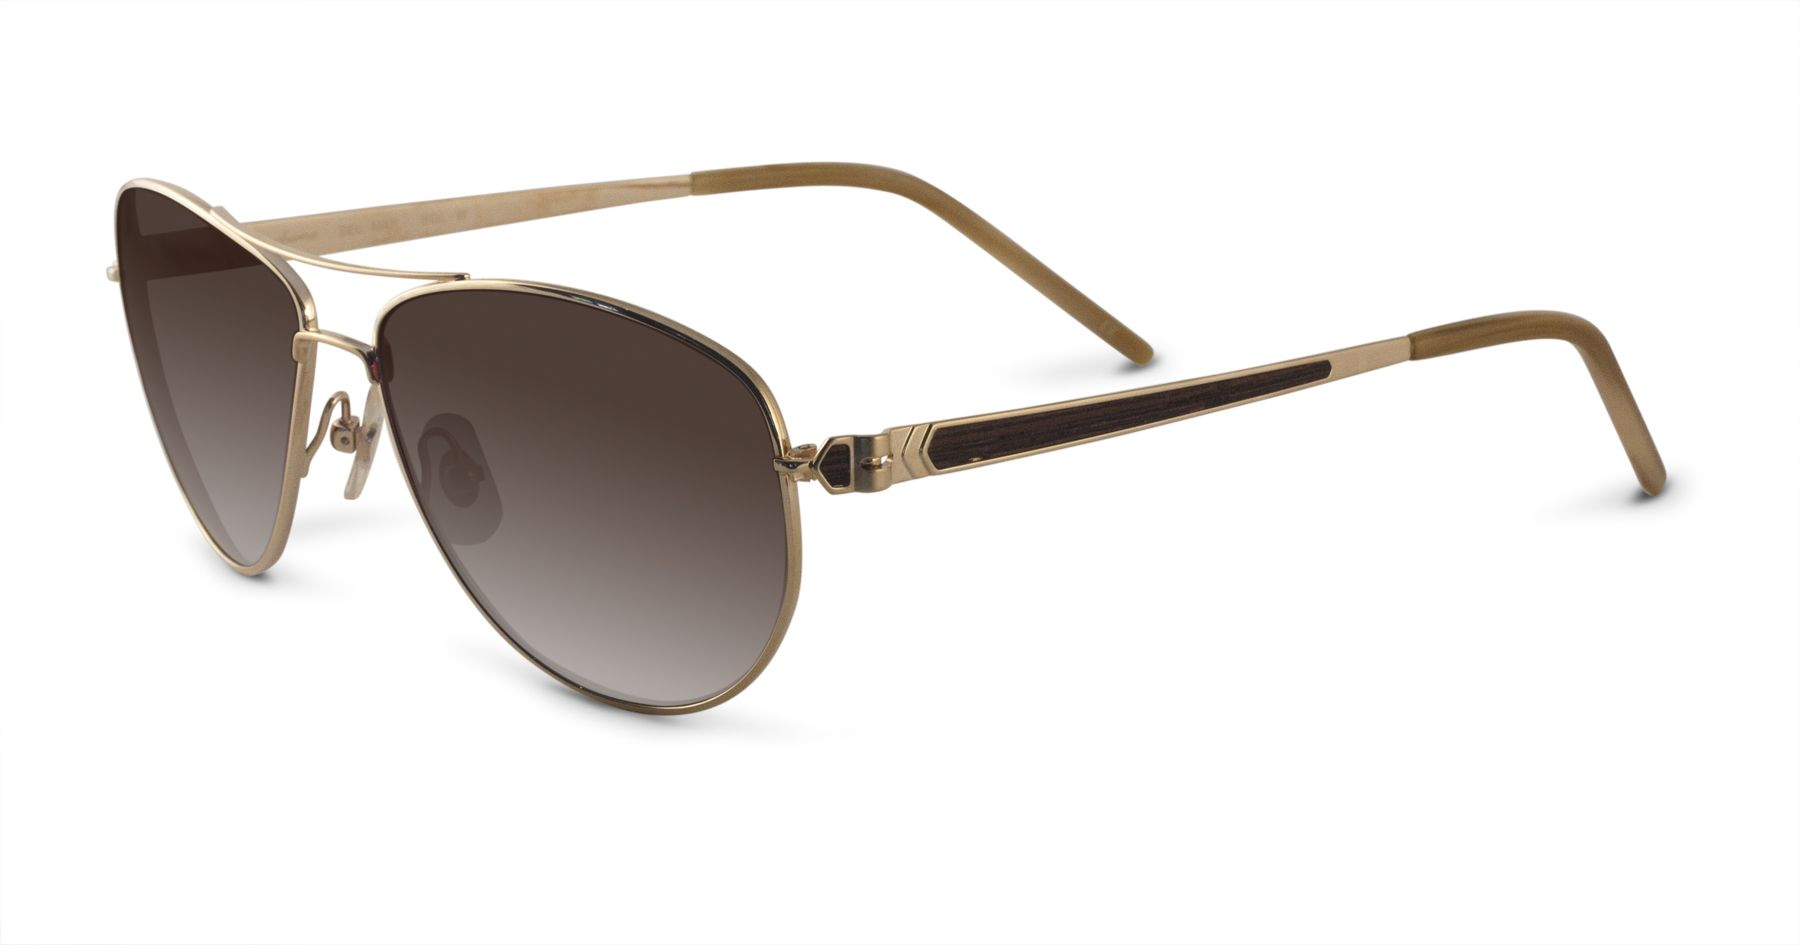 #sunglasses of the #month for #january2014: #samaeyewear #DelMar in brushed #gold/#wood